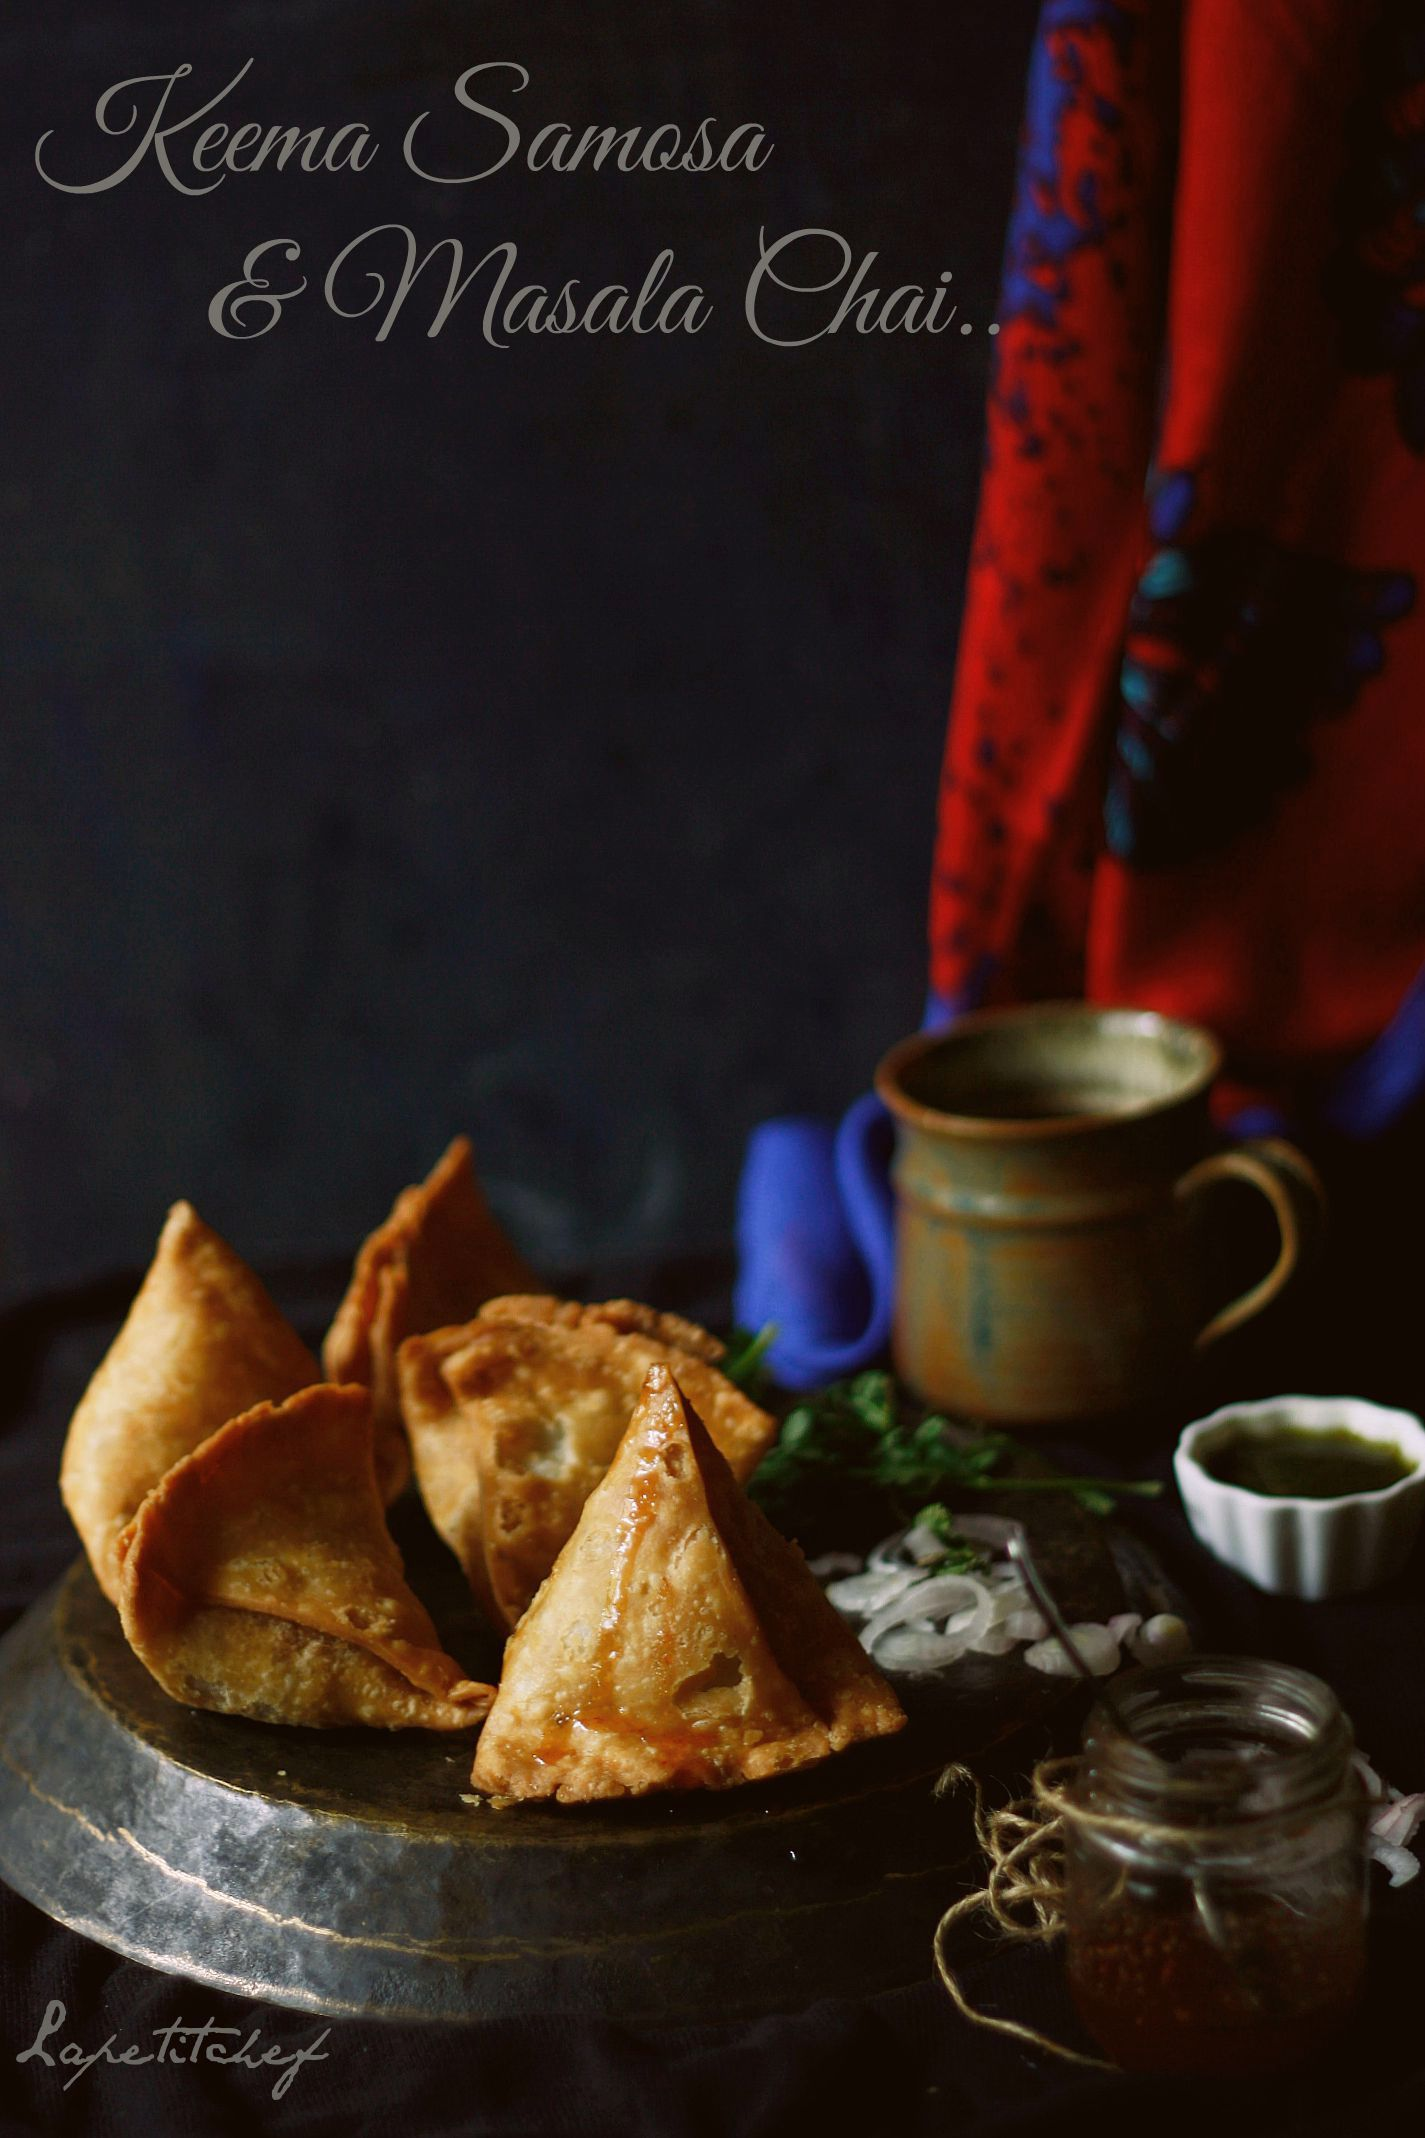 Keema samosa recipe goat meat garam masala and goats keema samosa meat samosasamosasgoat meatindian snacksethnic recipesindian food recipesgaram masalaamazing forumfinder Images